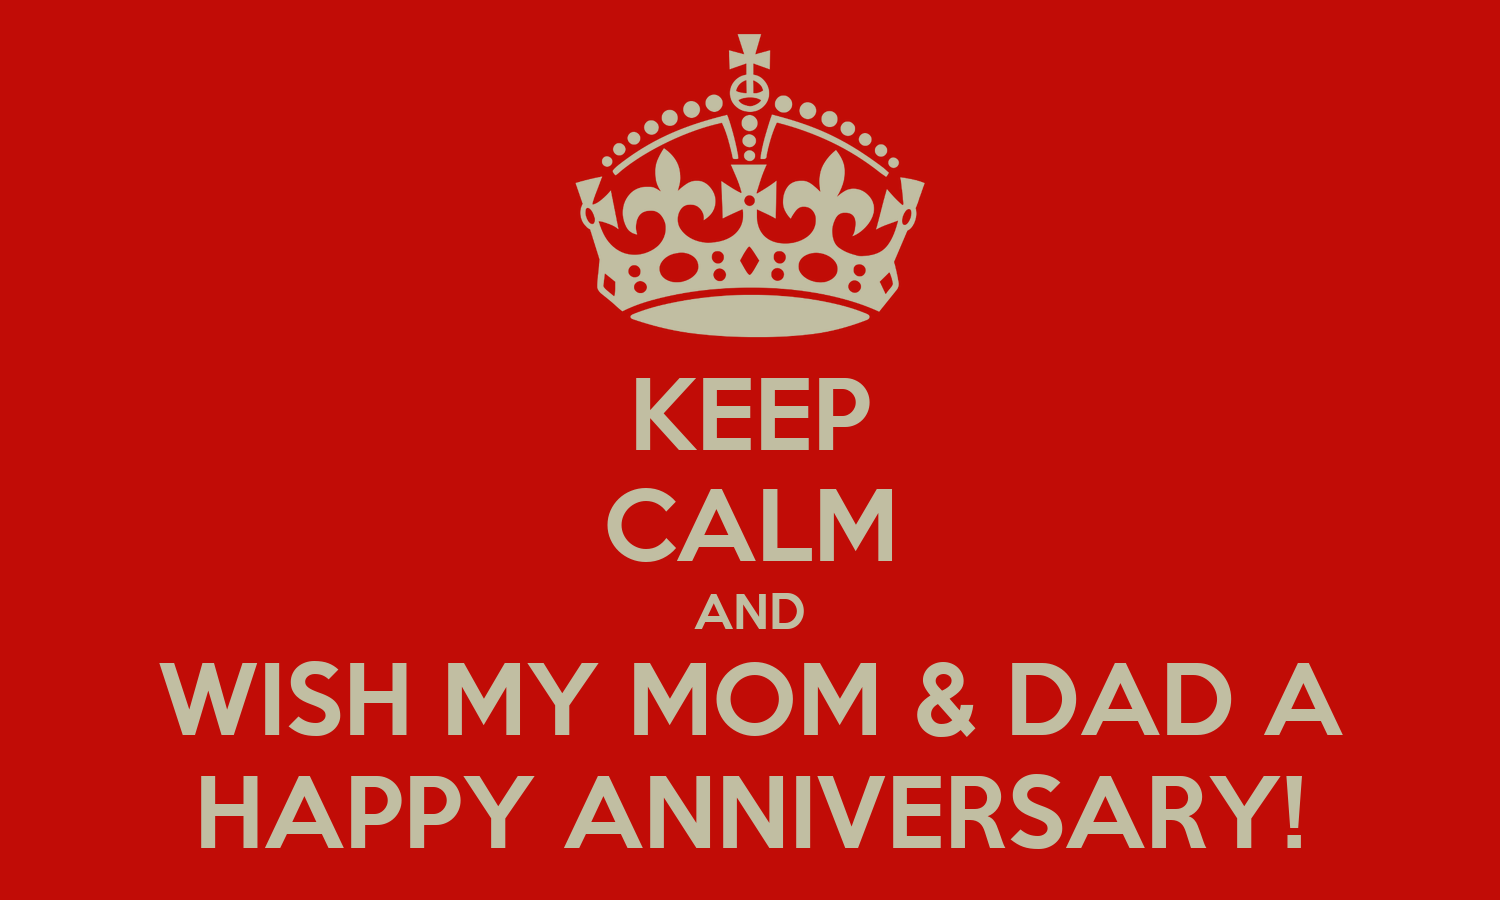 Keep Calm And Wish My Mom Dad A Happy Anniversary Poster Tanya